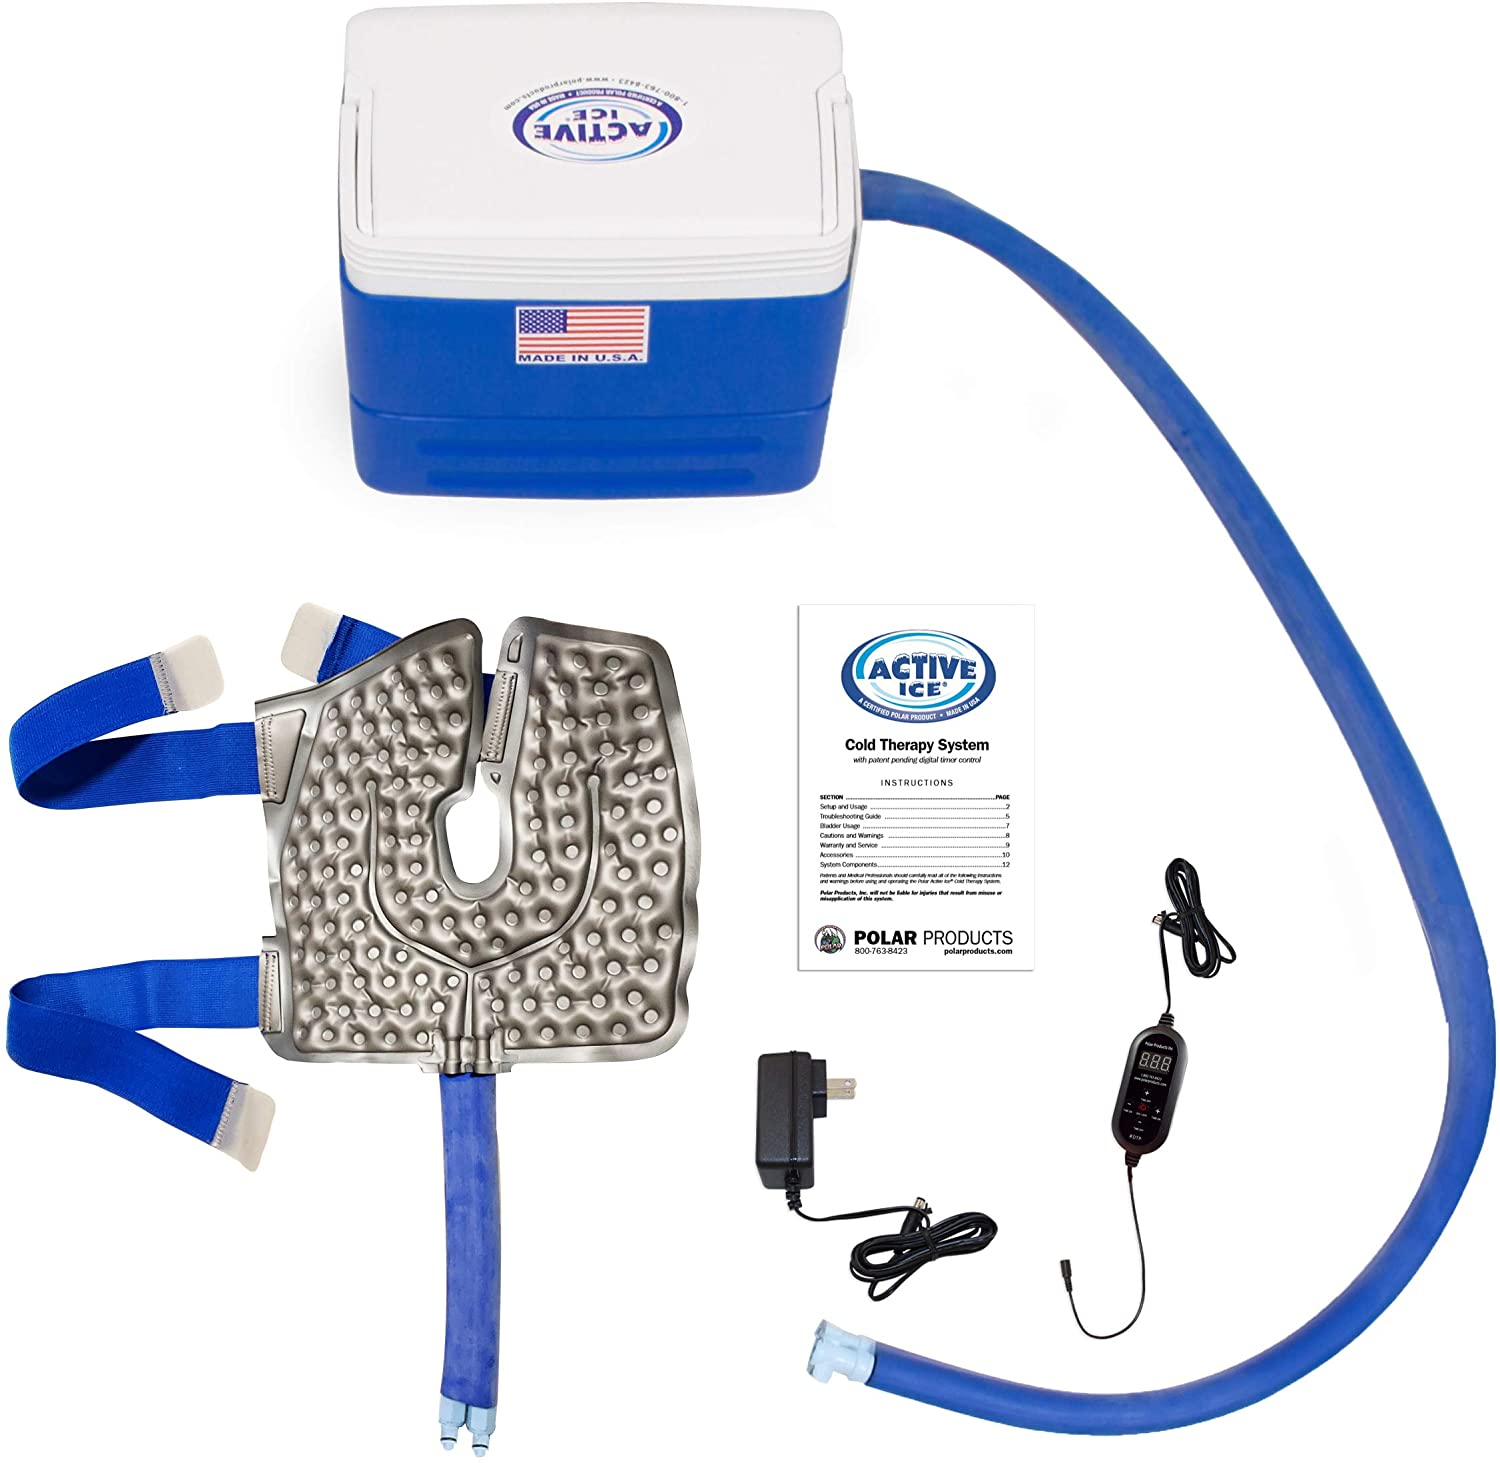 Polar Active Programmable Ice Therapy Machines